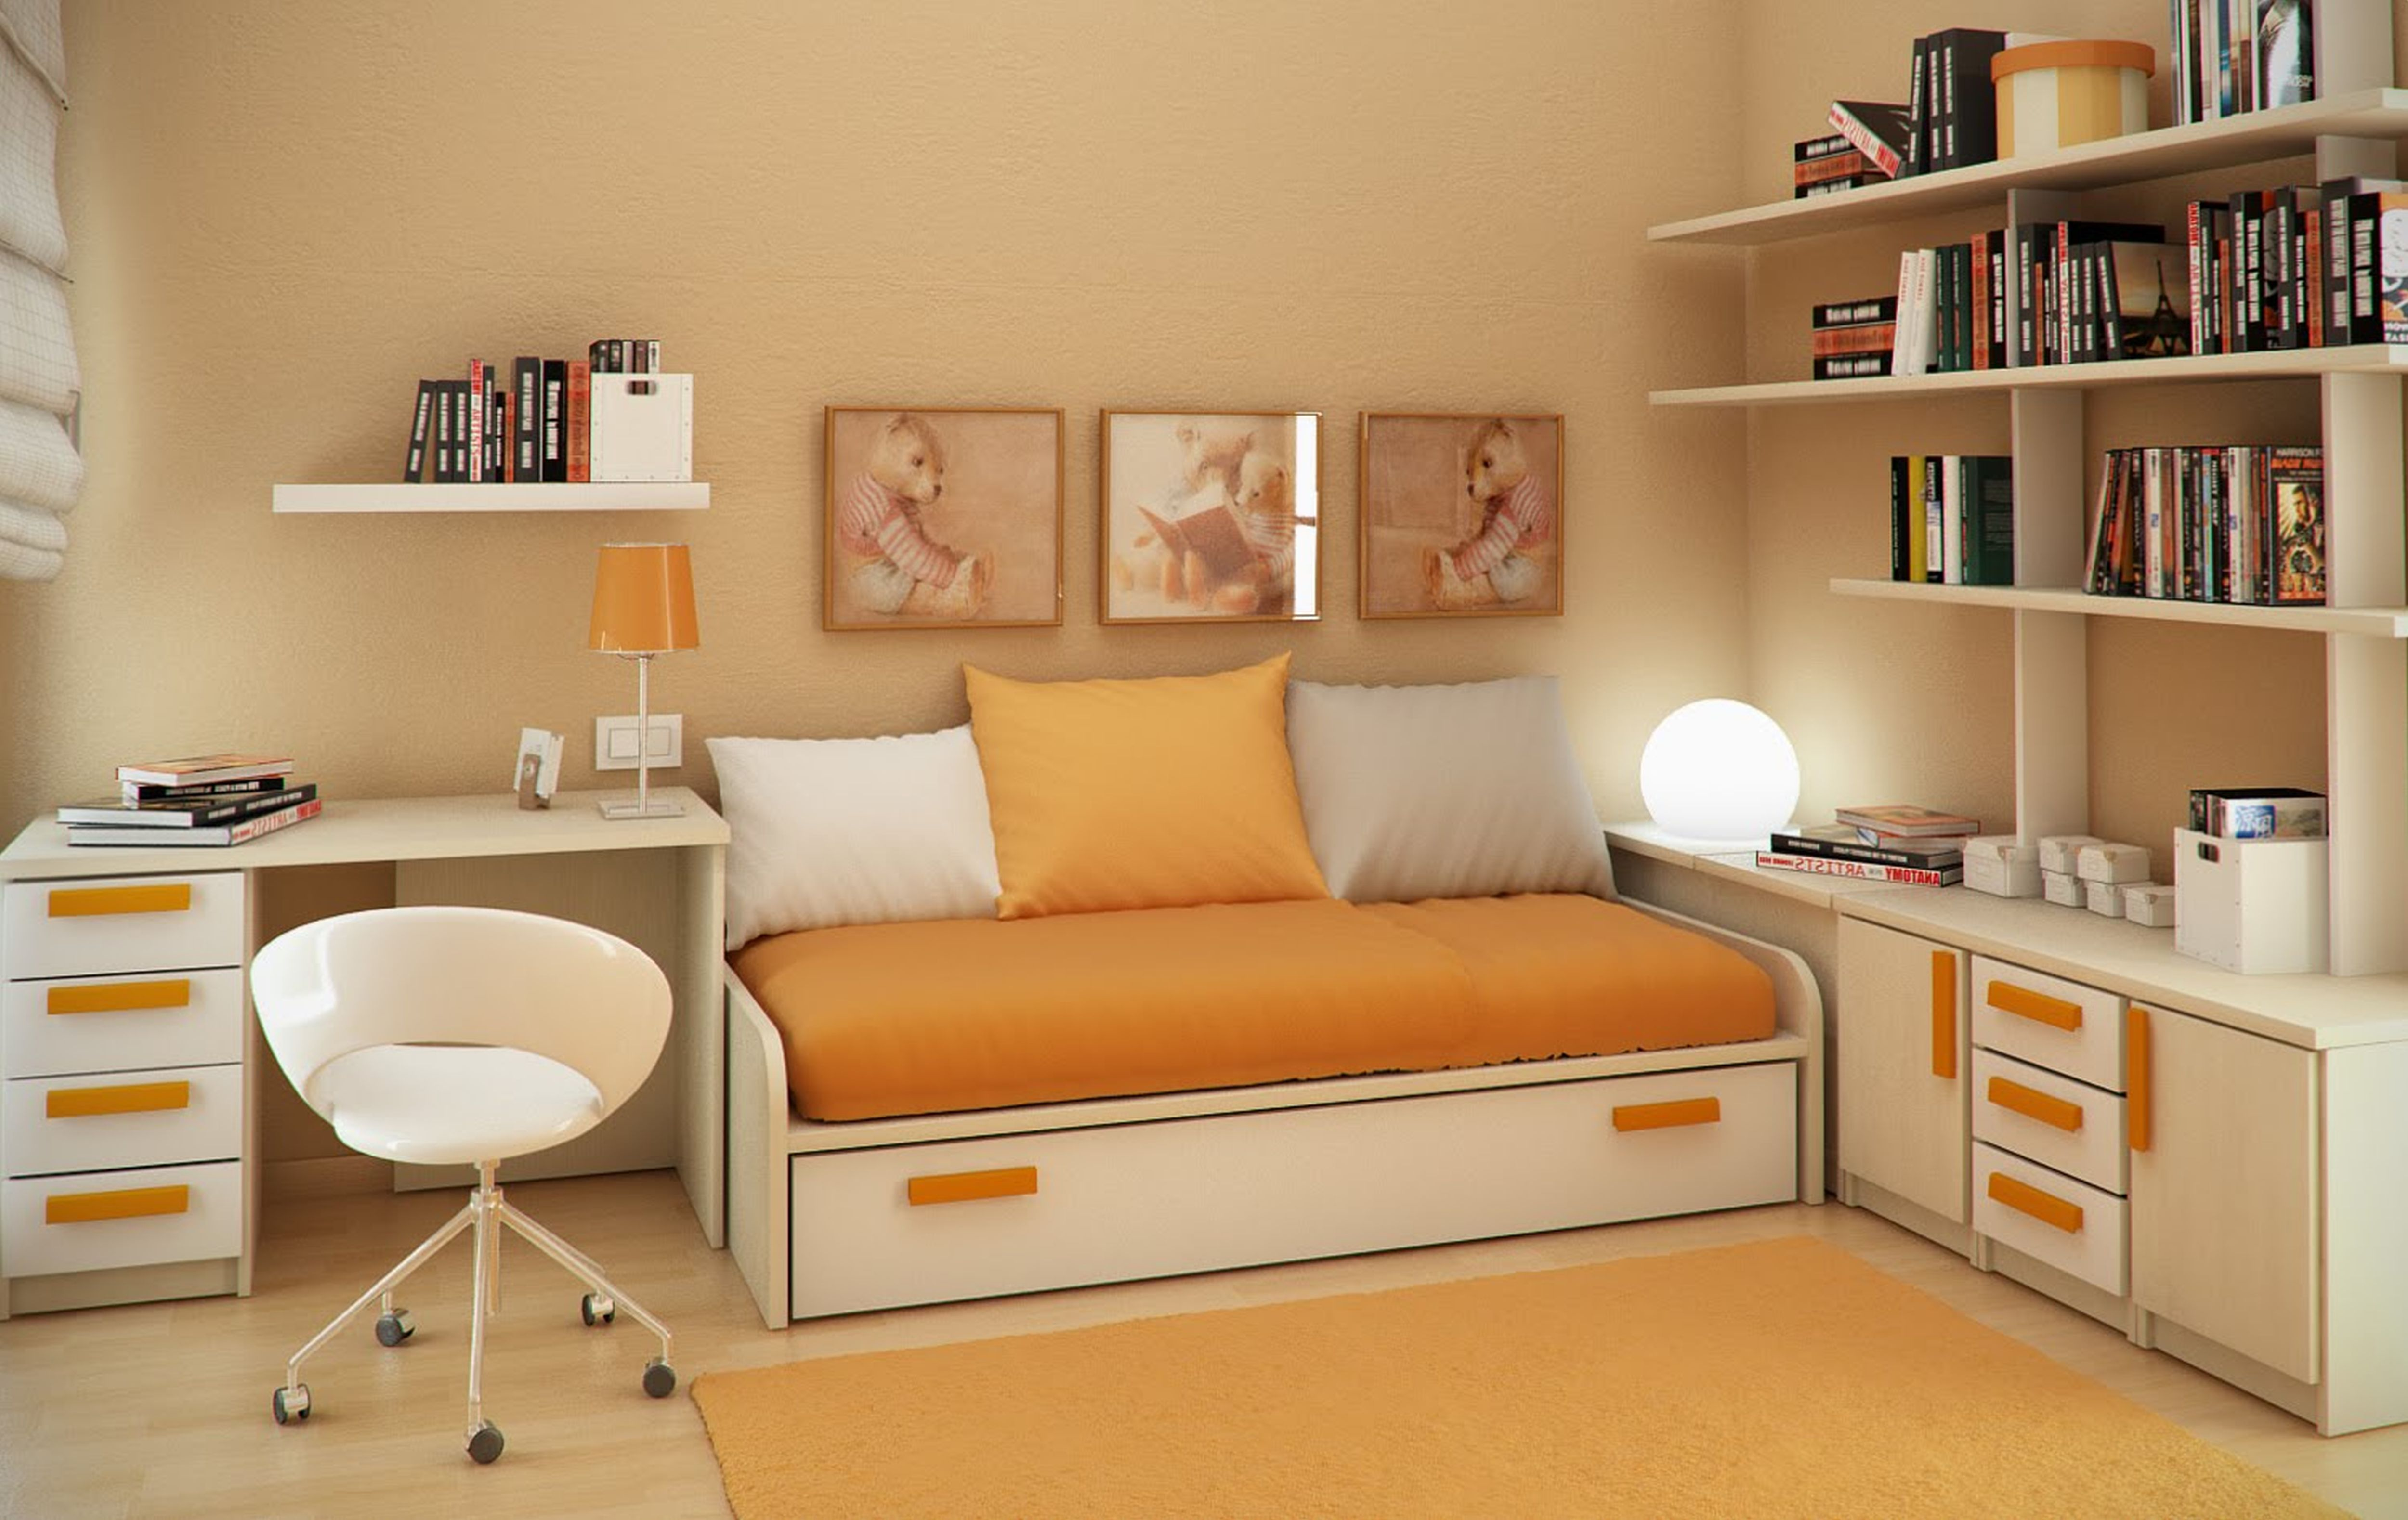 Small Bedroom Desk Small Bedroom Desks For A Narrow Bedroom Space Homesfeed